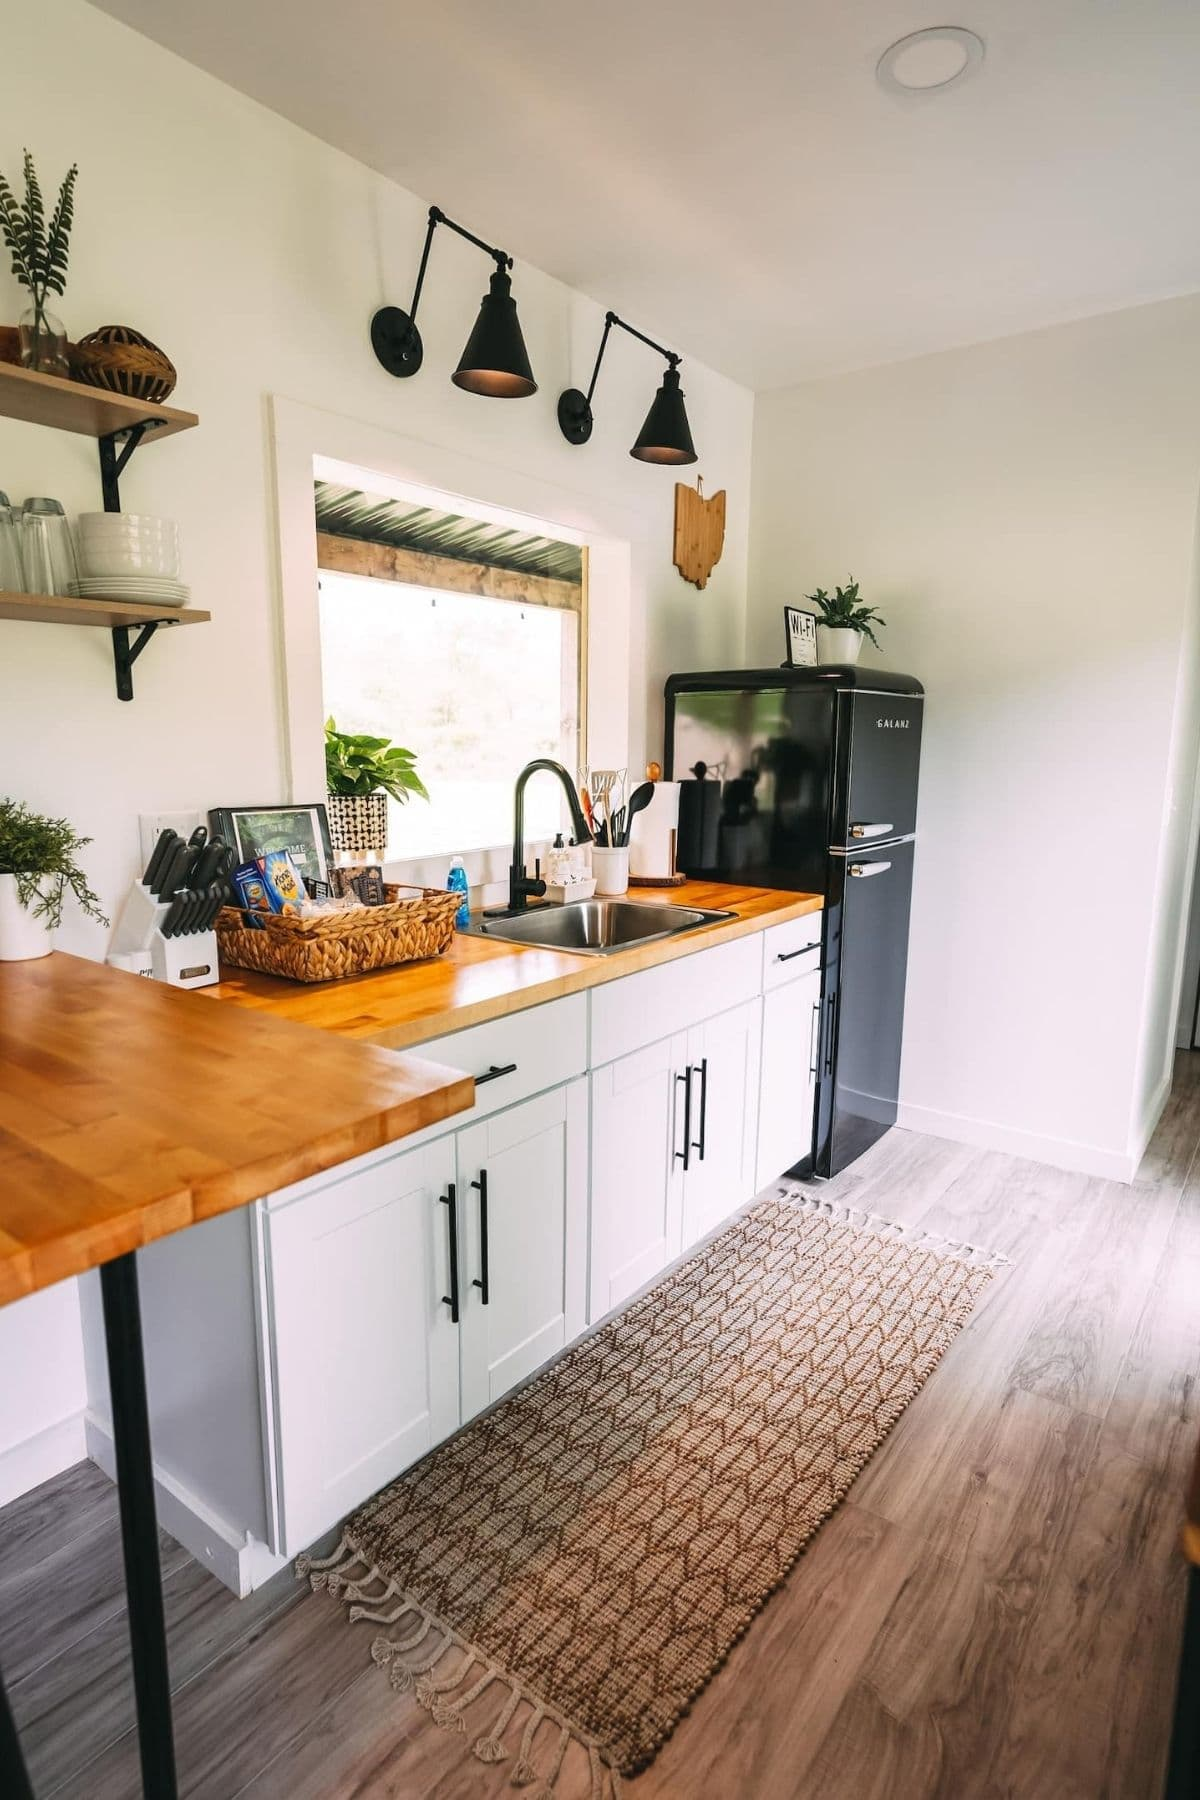 White cabinets with butcher block top against wall under large window